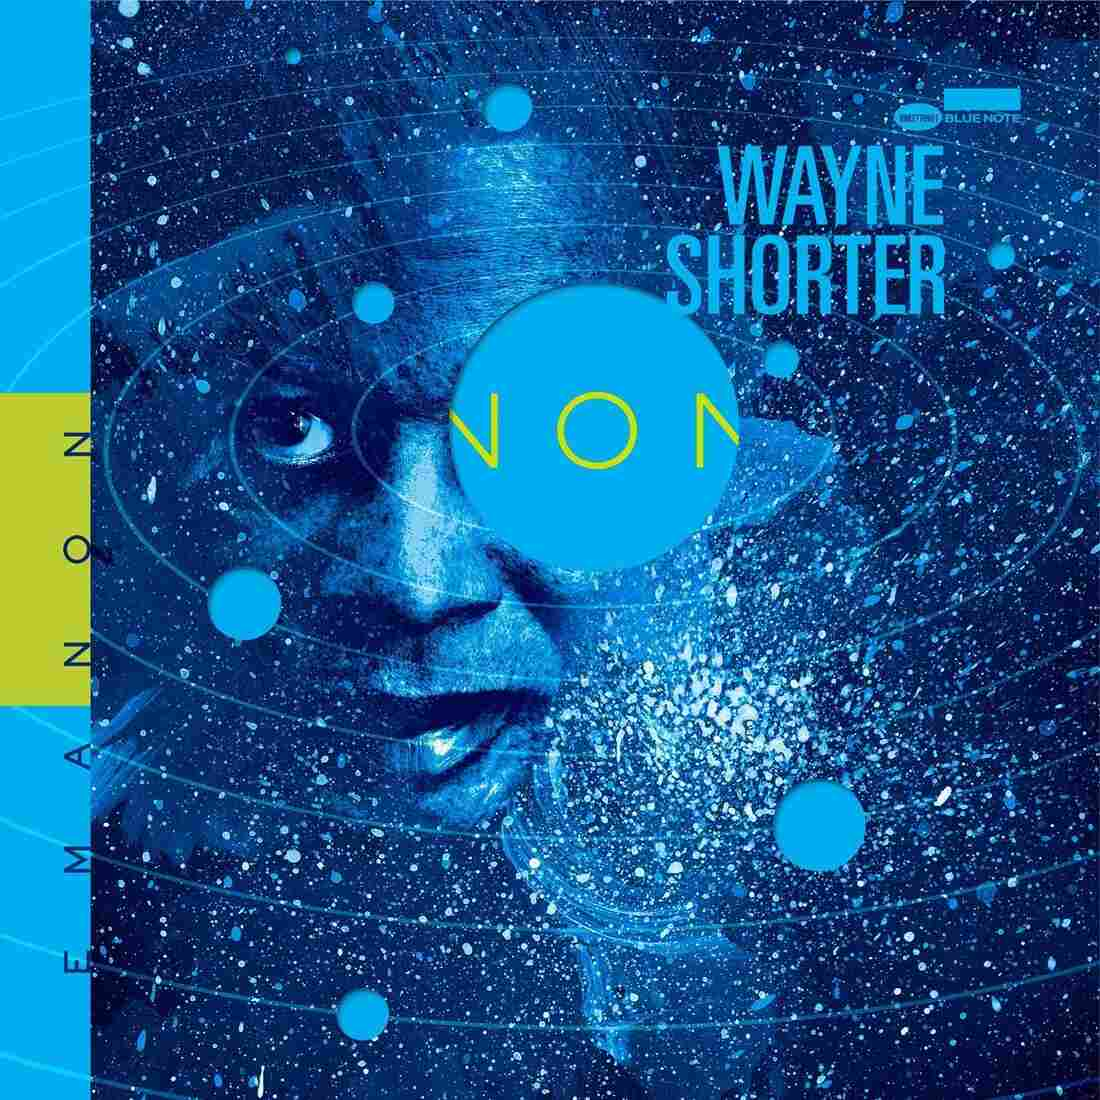 Wayne Shorter's Emanon, a three-disc album accompanied by a 84-page graphic novel, was voted the No. 1 new album of 2018 by over 130 jazz critics.